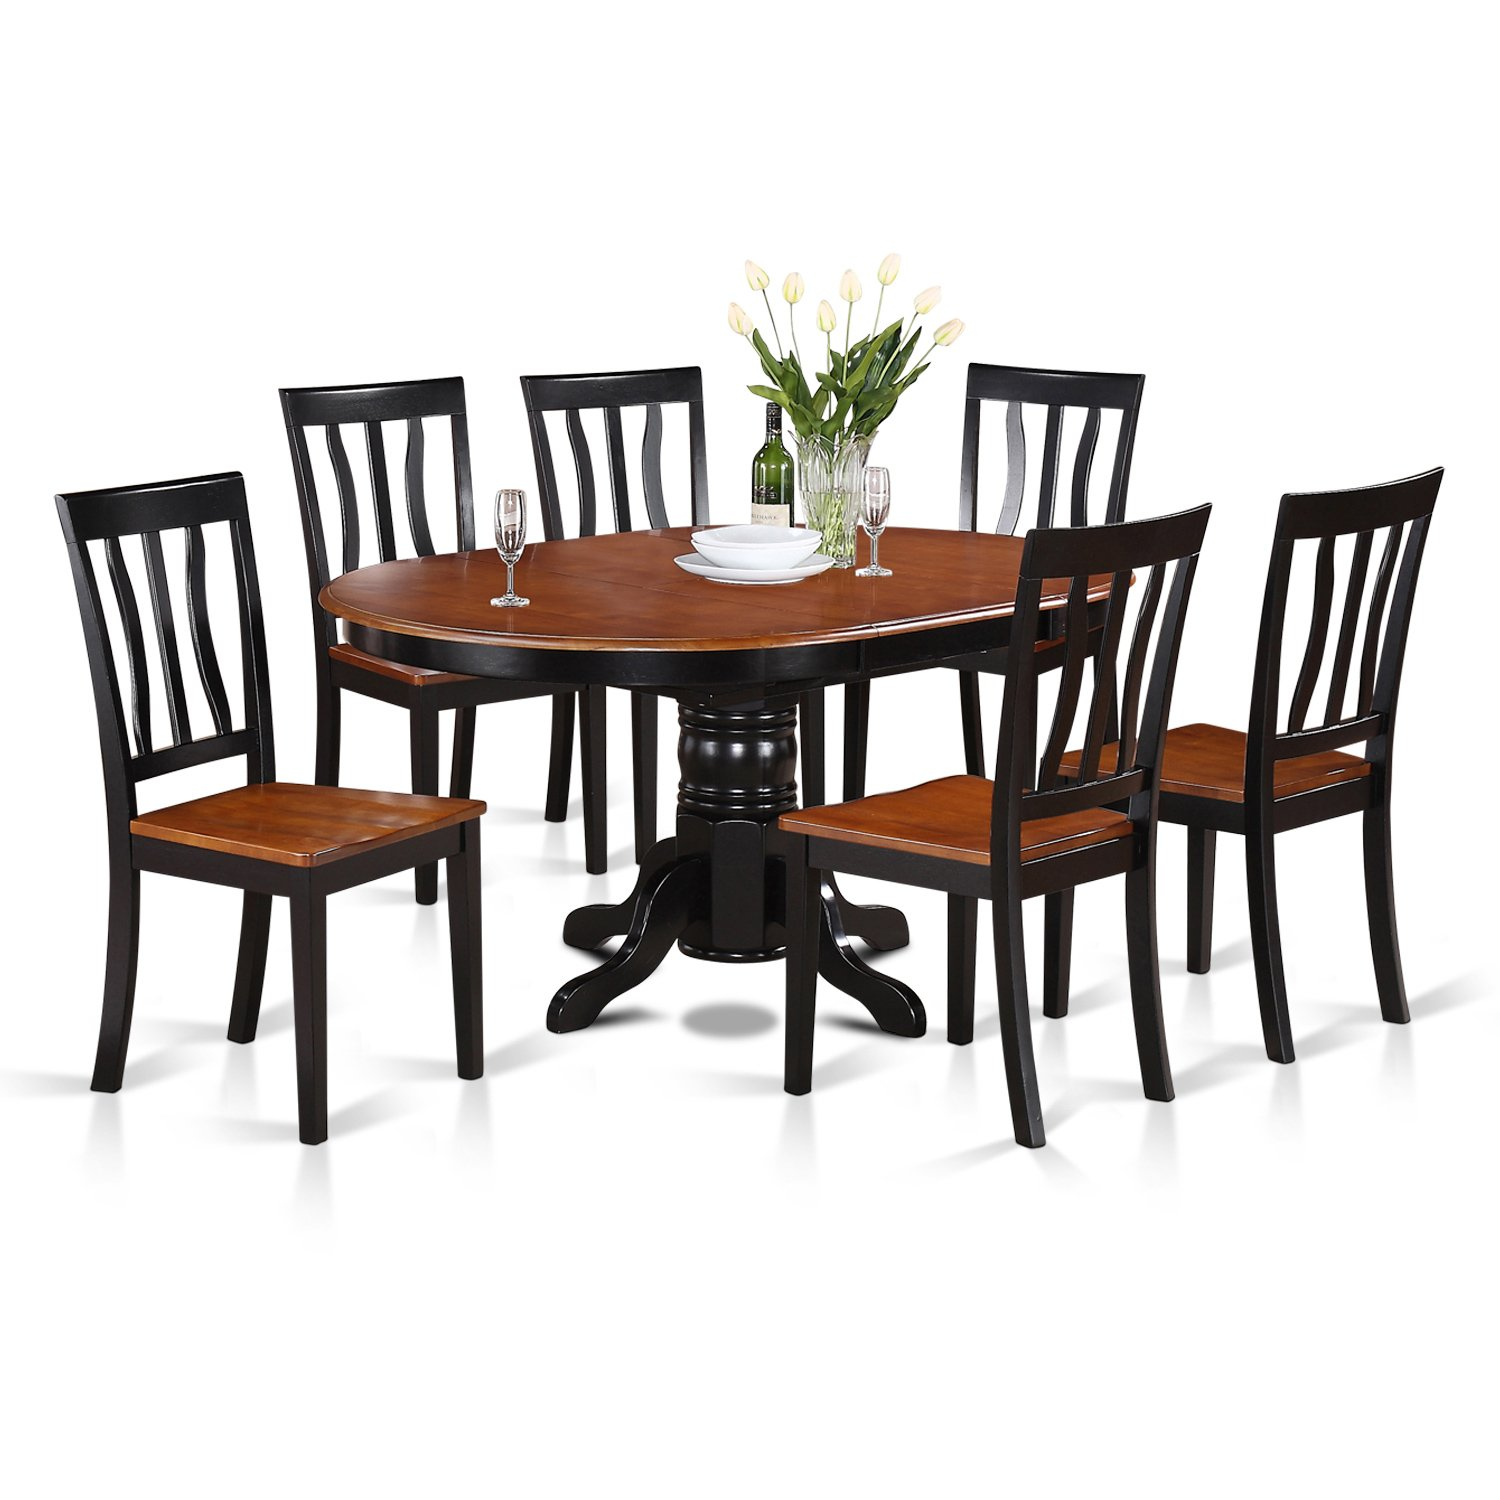 Amazon.com - East West Furniture AVAT7-BLK-W 7-Piece Dining Table Set - Table u0026 Chair Sets  sc 1 st  Amazon.com & Amazon.com - East West Furniture AVAT7-BLK-W 7-Piece Dining Table ...